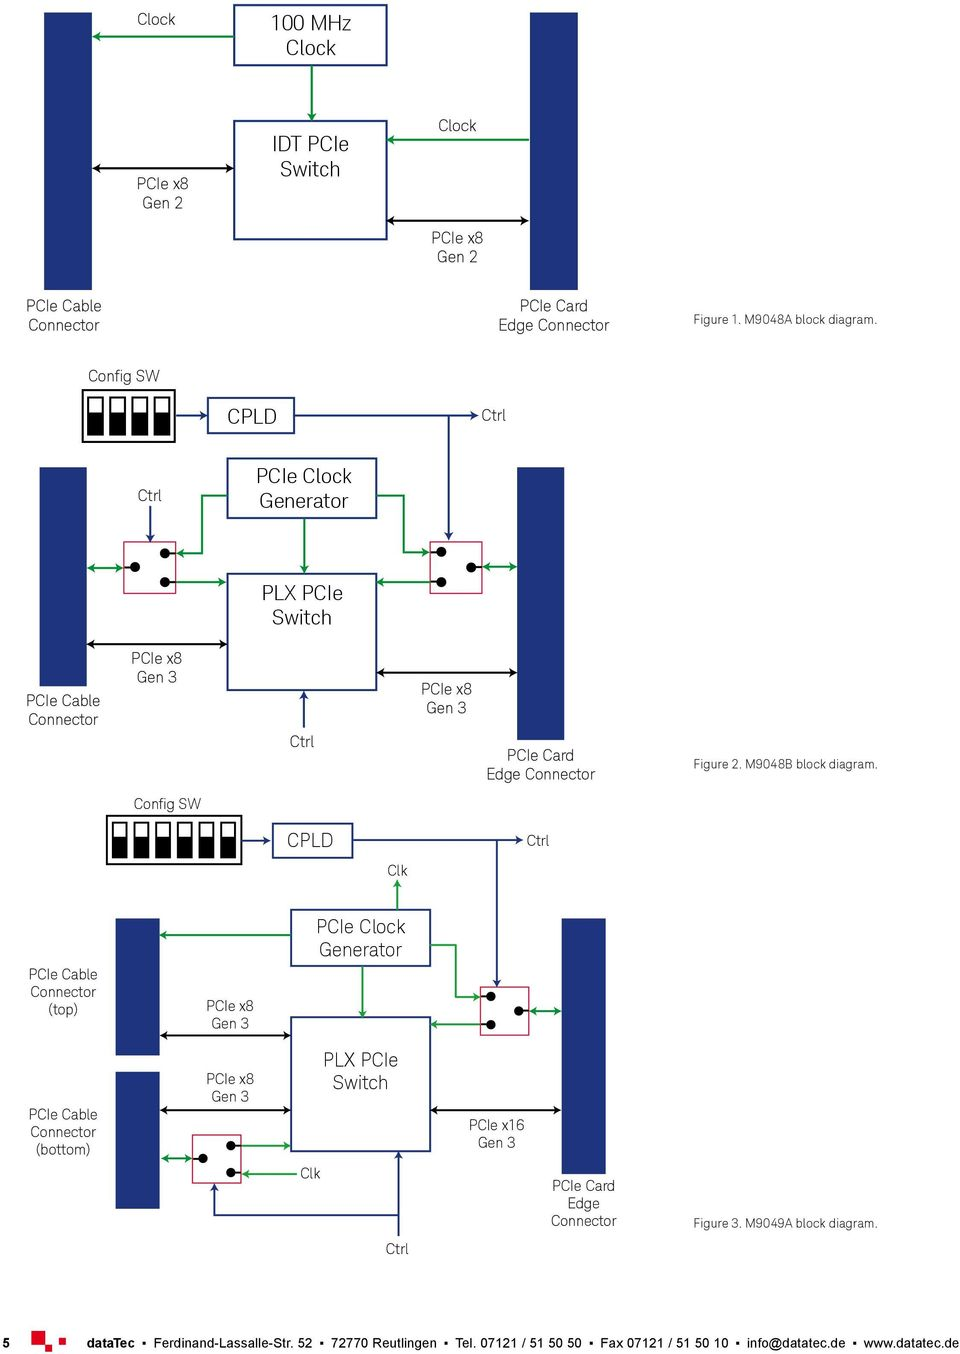 Config SW CPLD PCIe Clock Generator PLX PCIe Switch PCIe Card Edge Figure 2. M9048B block diagram.